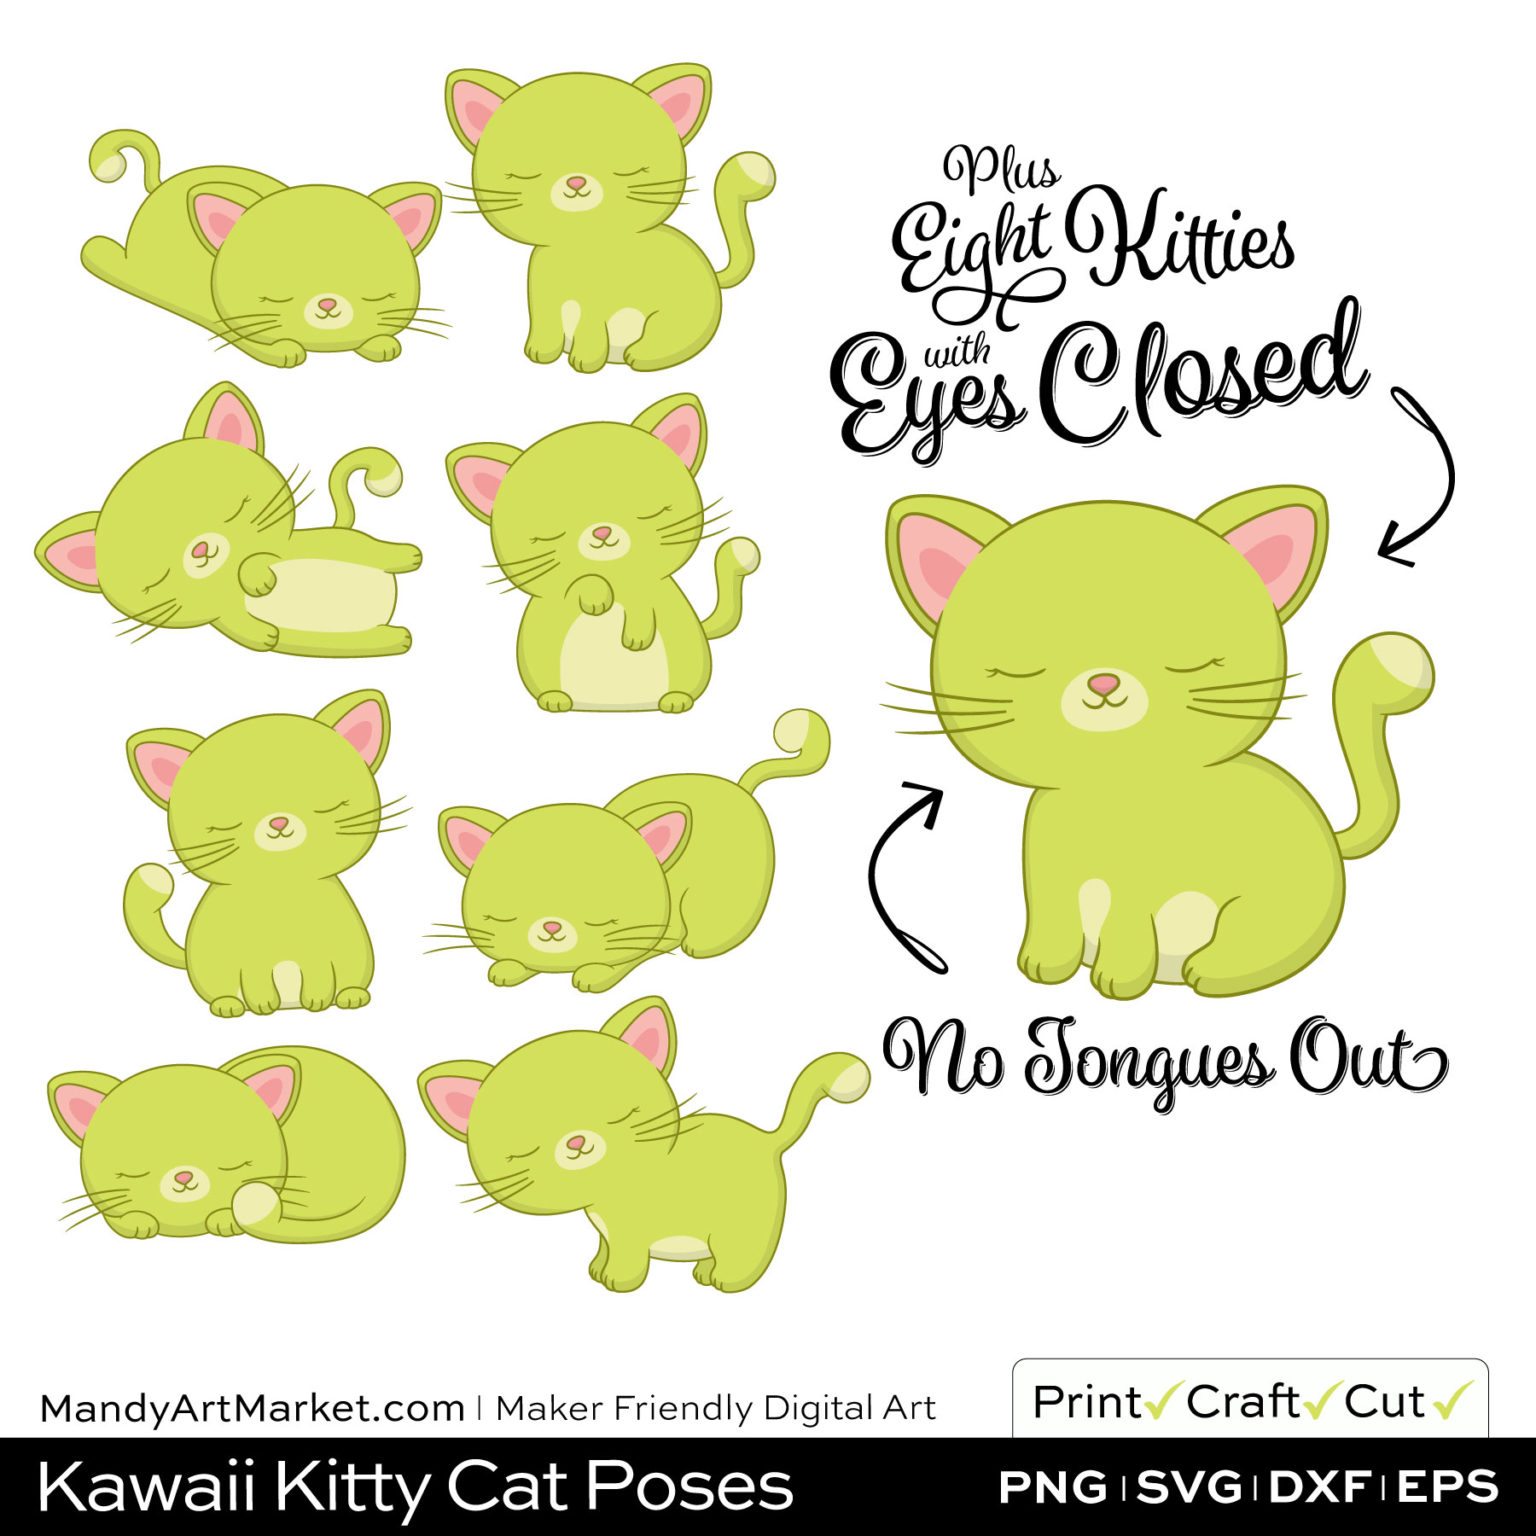 Pear Green Kawaii Kitty Cat Poses Clipart PNGs Included in Download